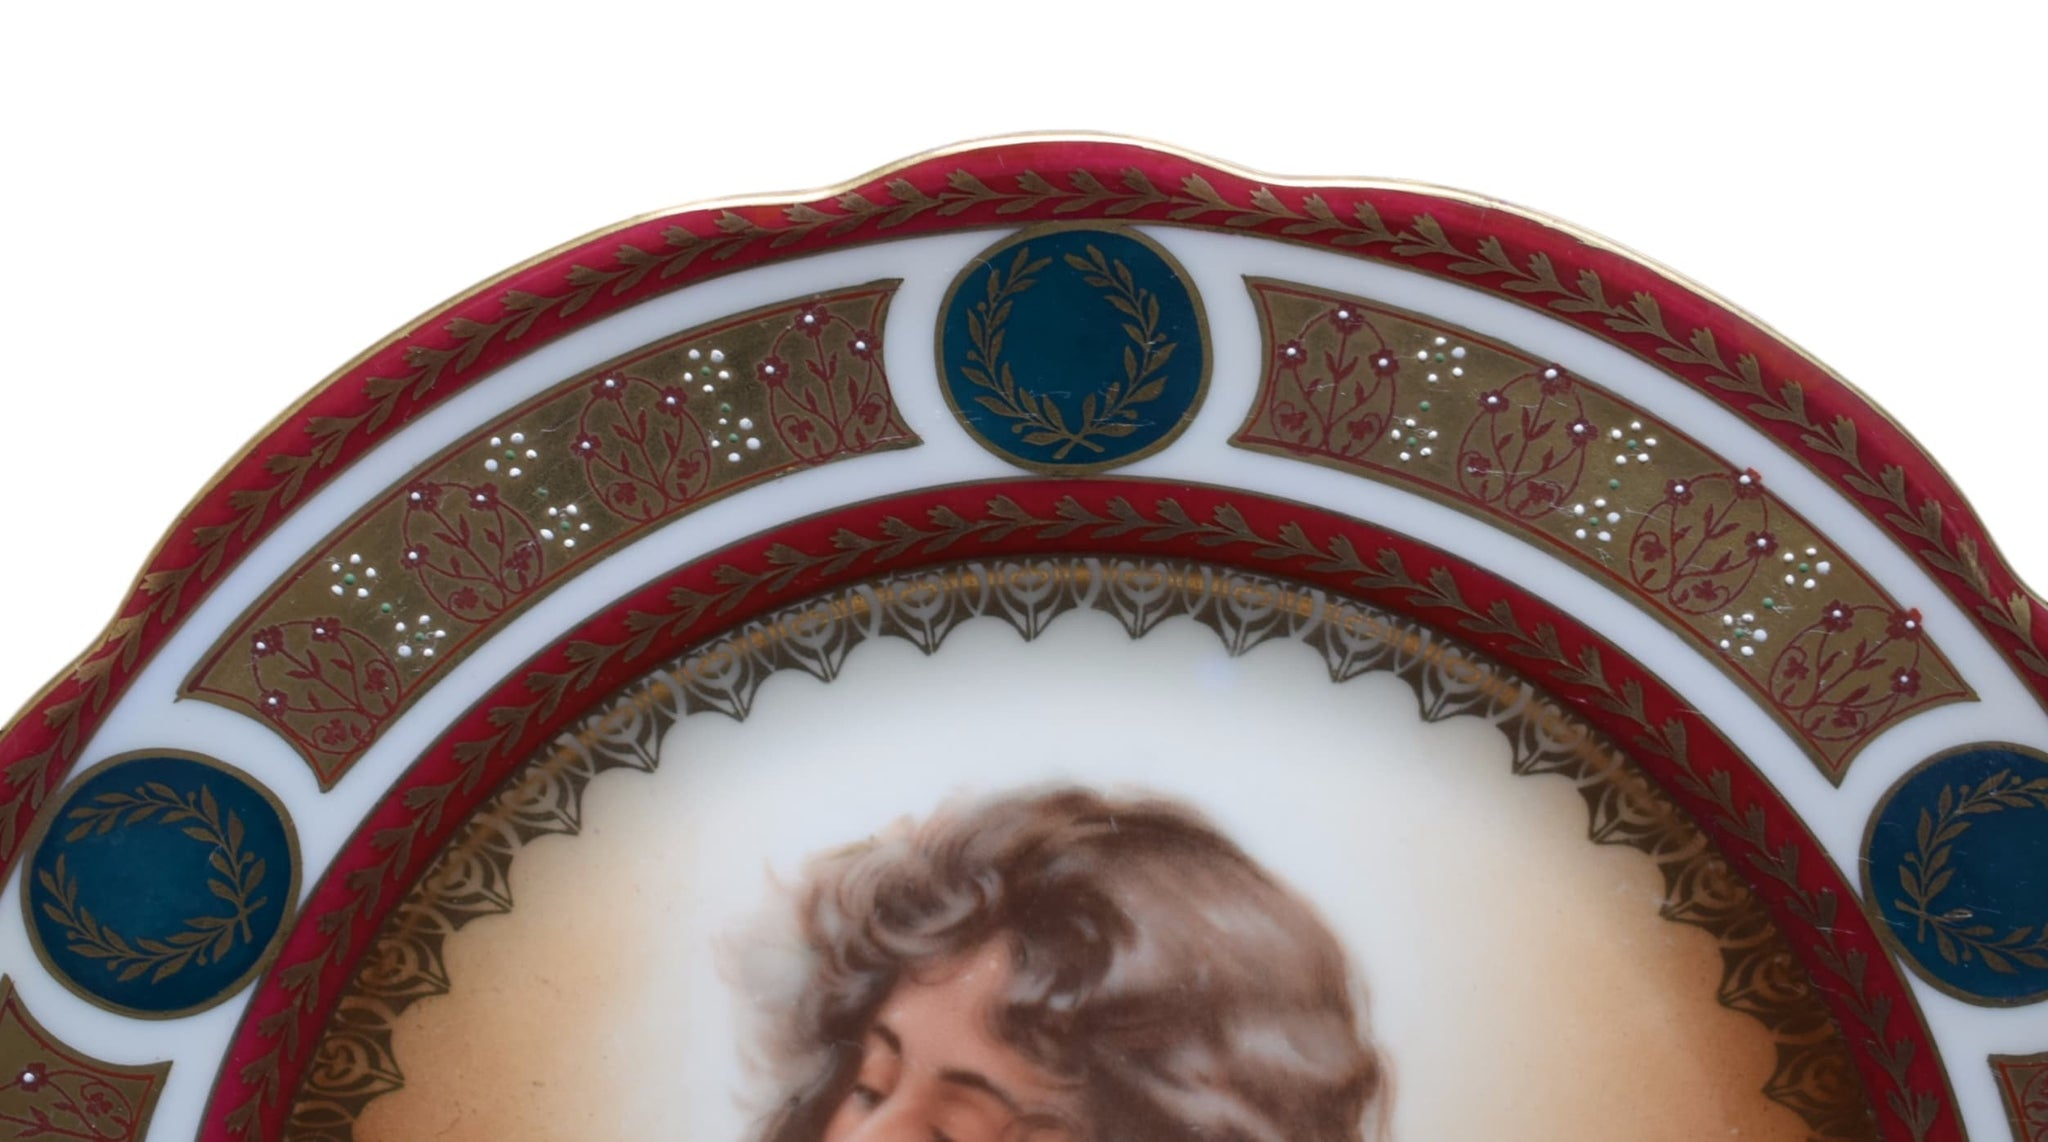 MZ Austria Antique Royal Vienna Porcelain Lady Portrait Plate - Charmantiques